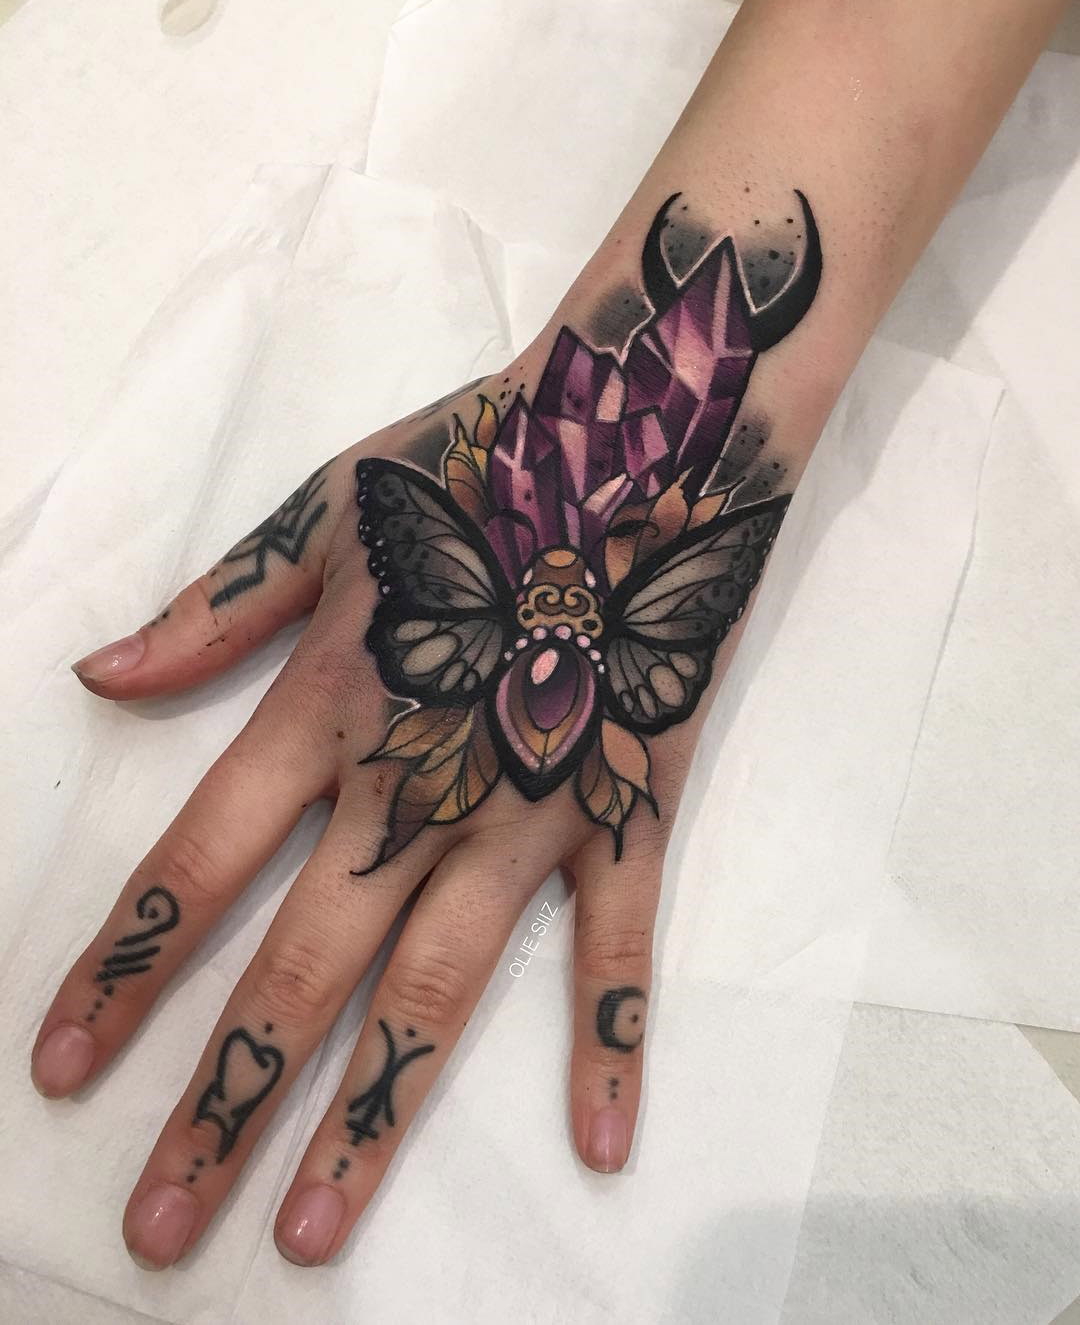 Tattoo Designs For Girls On Hand: Moth & Crystals, Girls Hand Tattoo